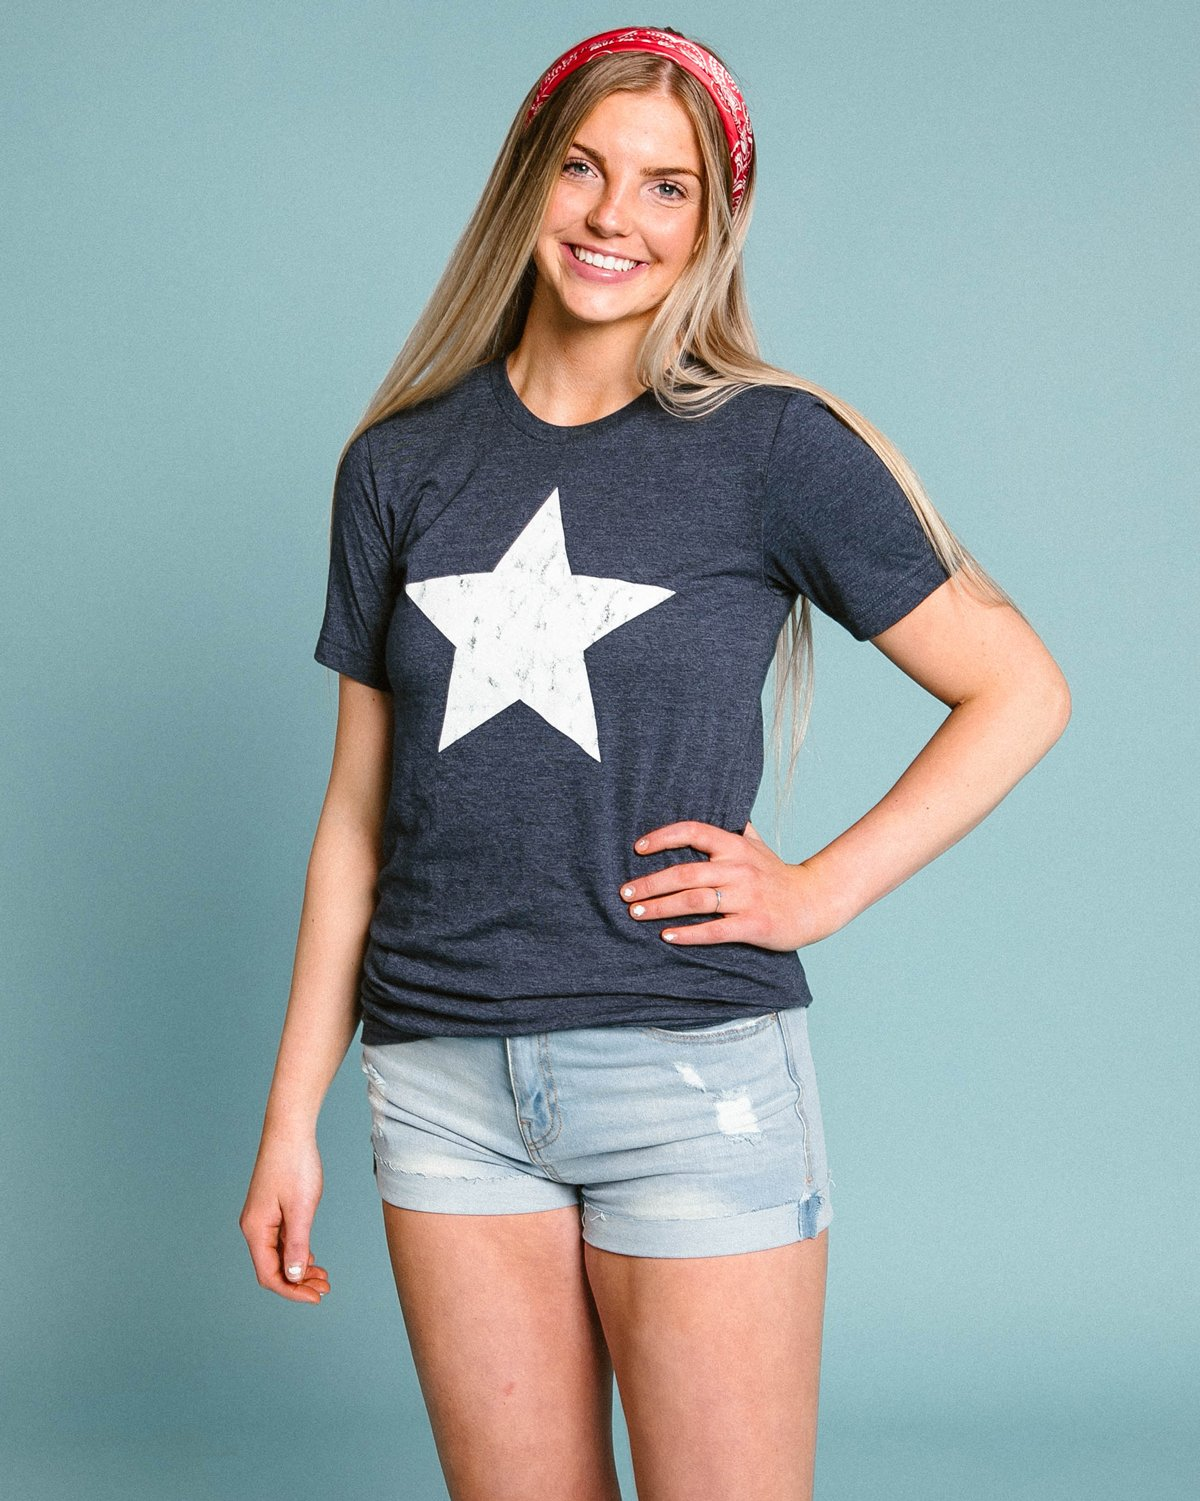 Vintage Star Graphic T-Shirt Only $14.98 Shipped!